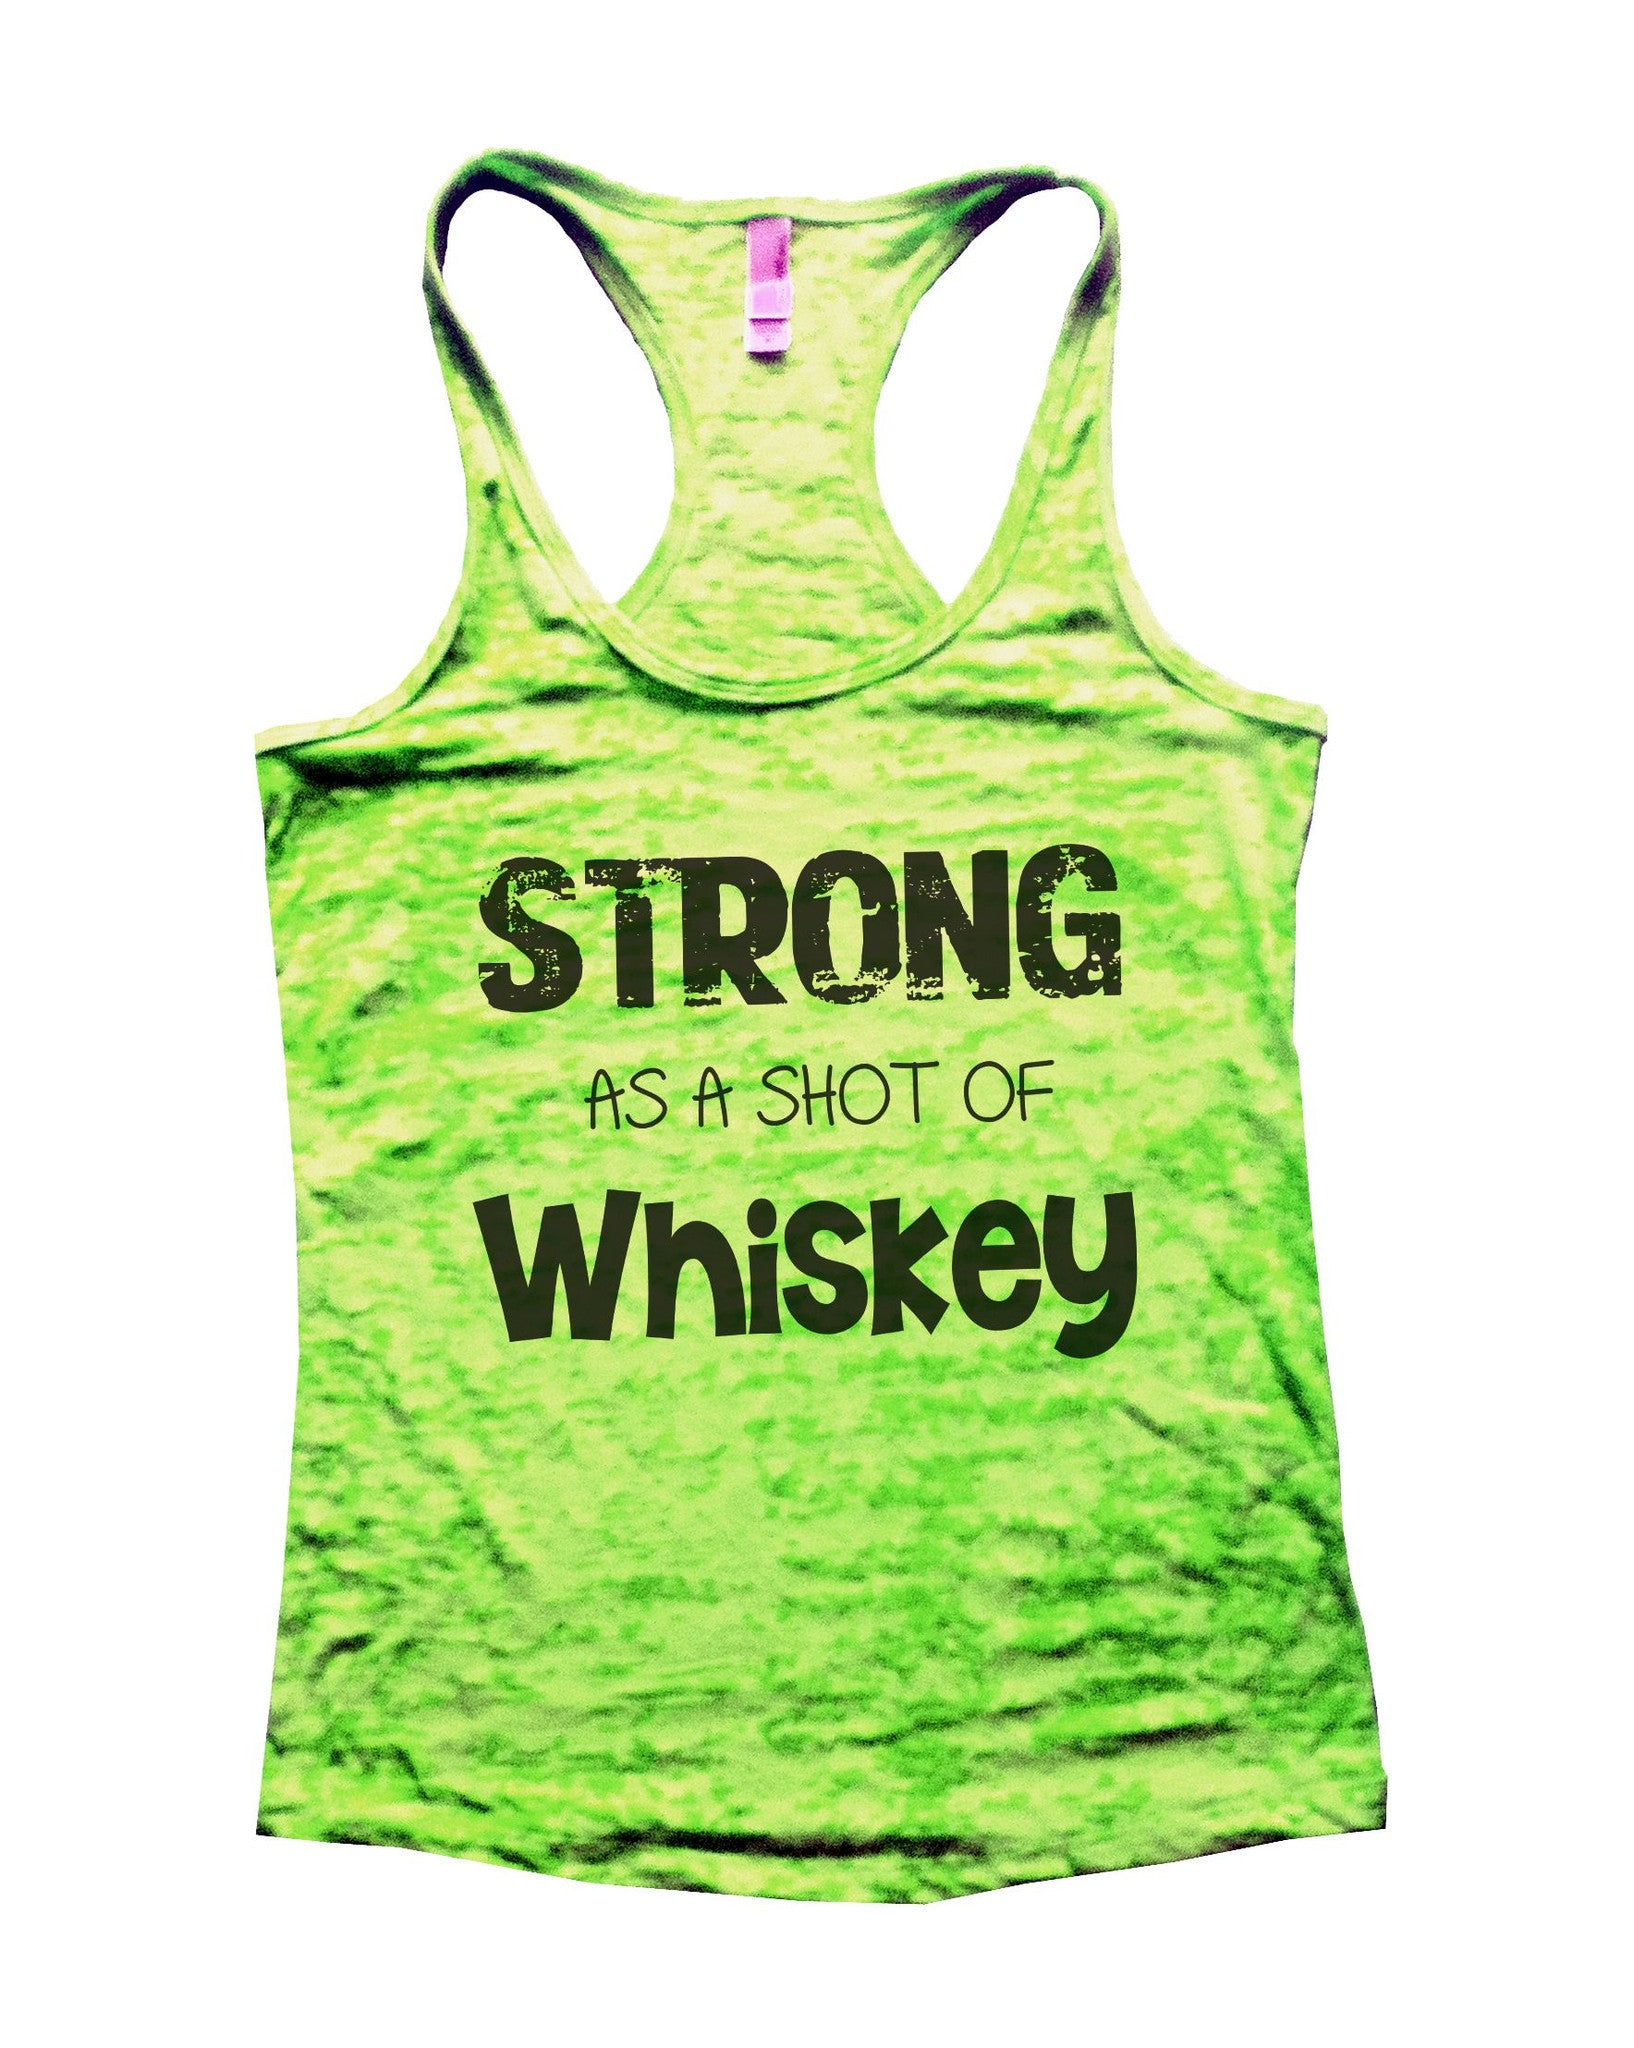 Strong As A Shot Of Whiskey Burnout Tank Top By BurnoutTankTops.com - 717 - Funny Shirts Tank Tops Burnouts and Triblends  - 1